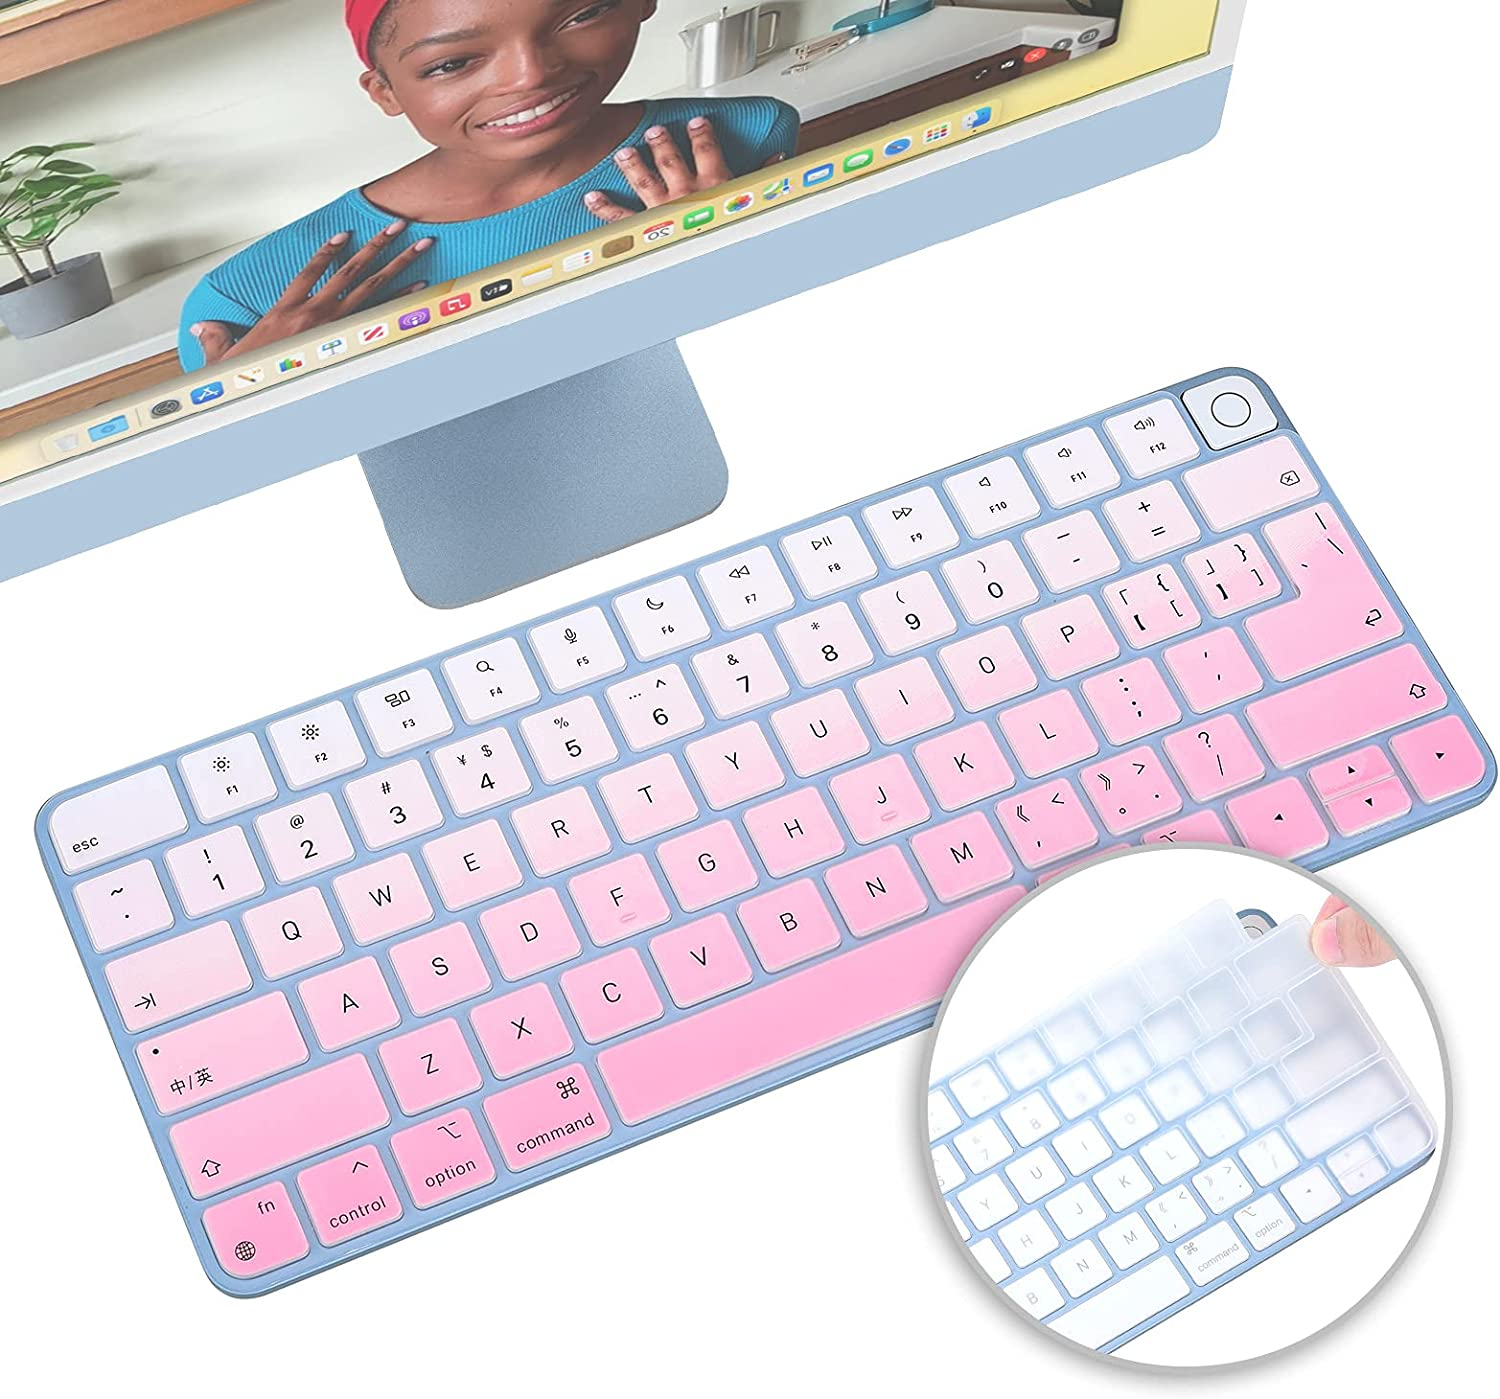 2 Pack iMac 2021 online shop Magic Inch Silicone Cover Keyboard 24 Shipping included